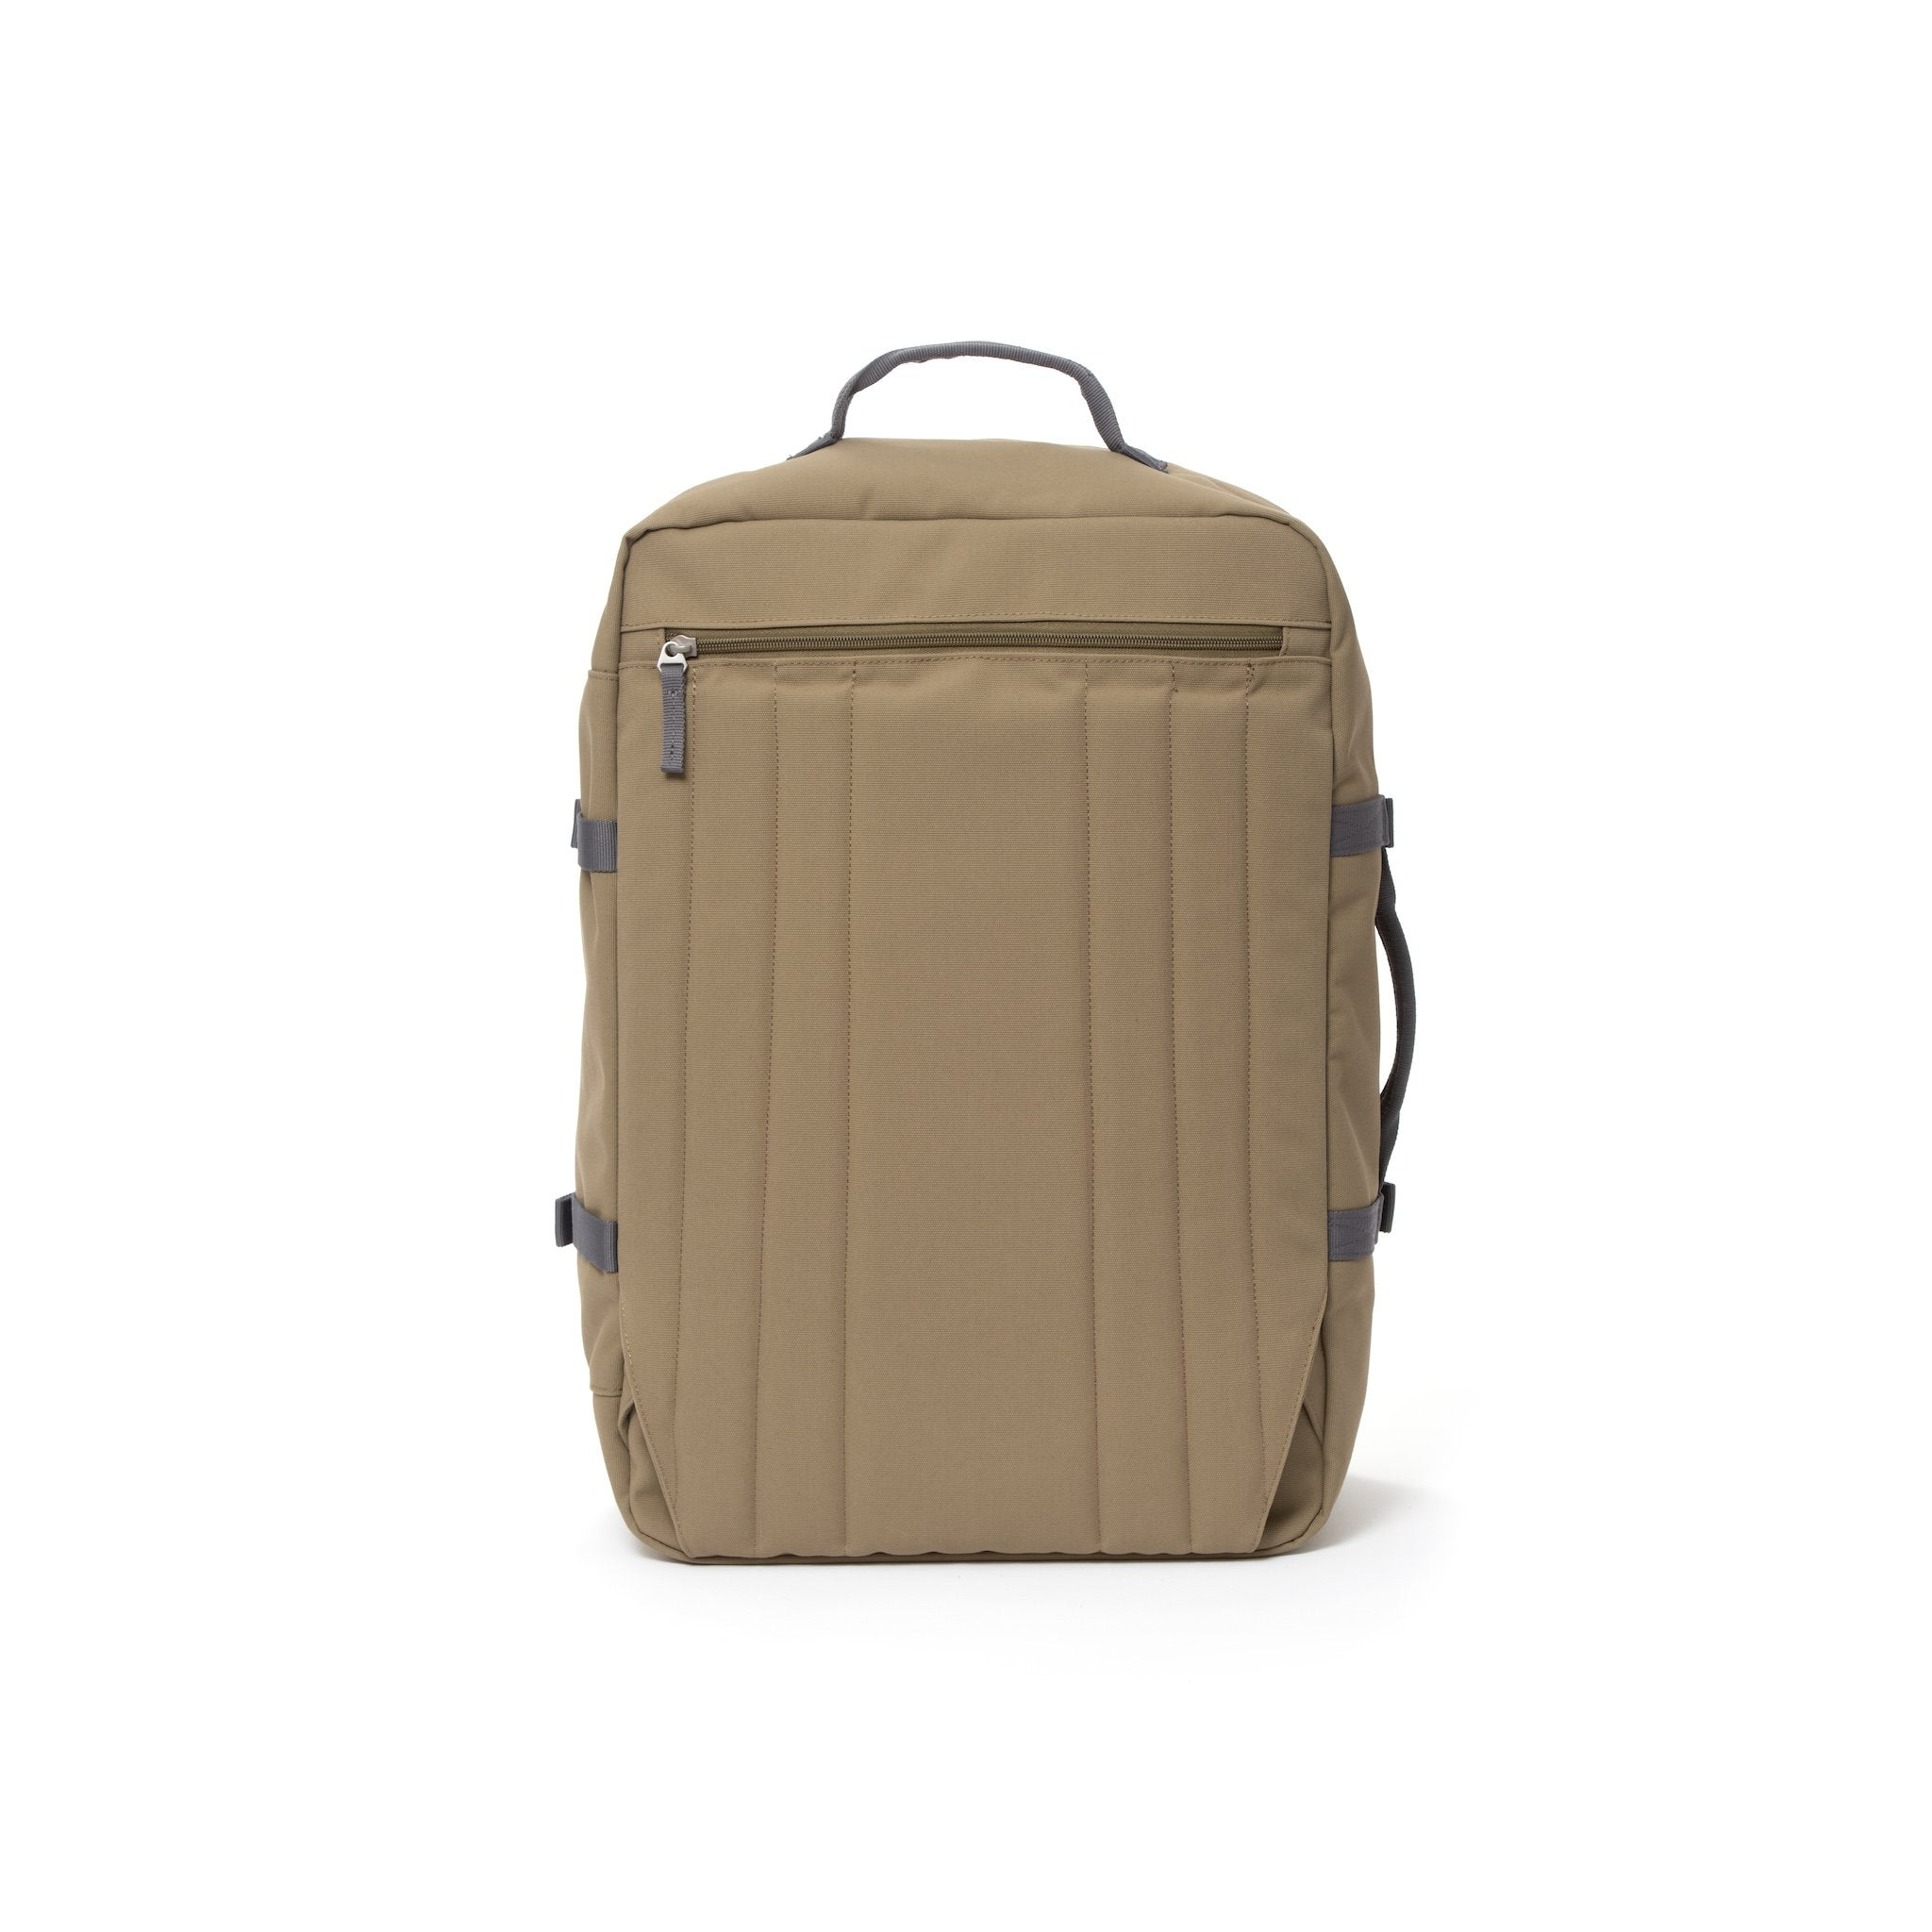 Khaki  travel backpack with hidden shoulder straps.